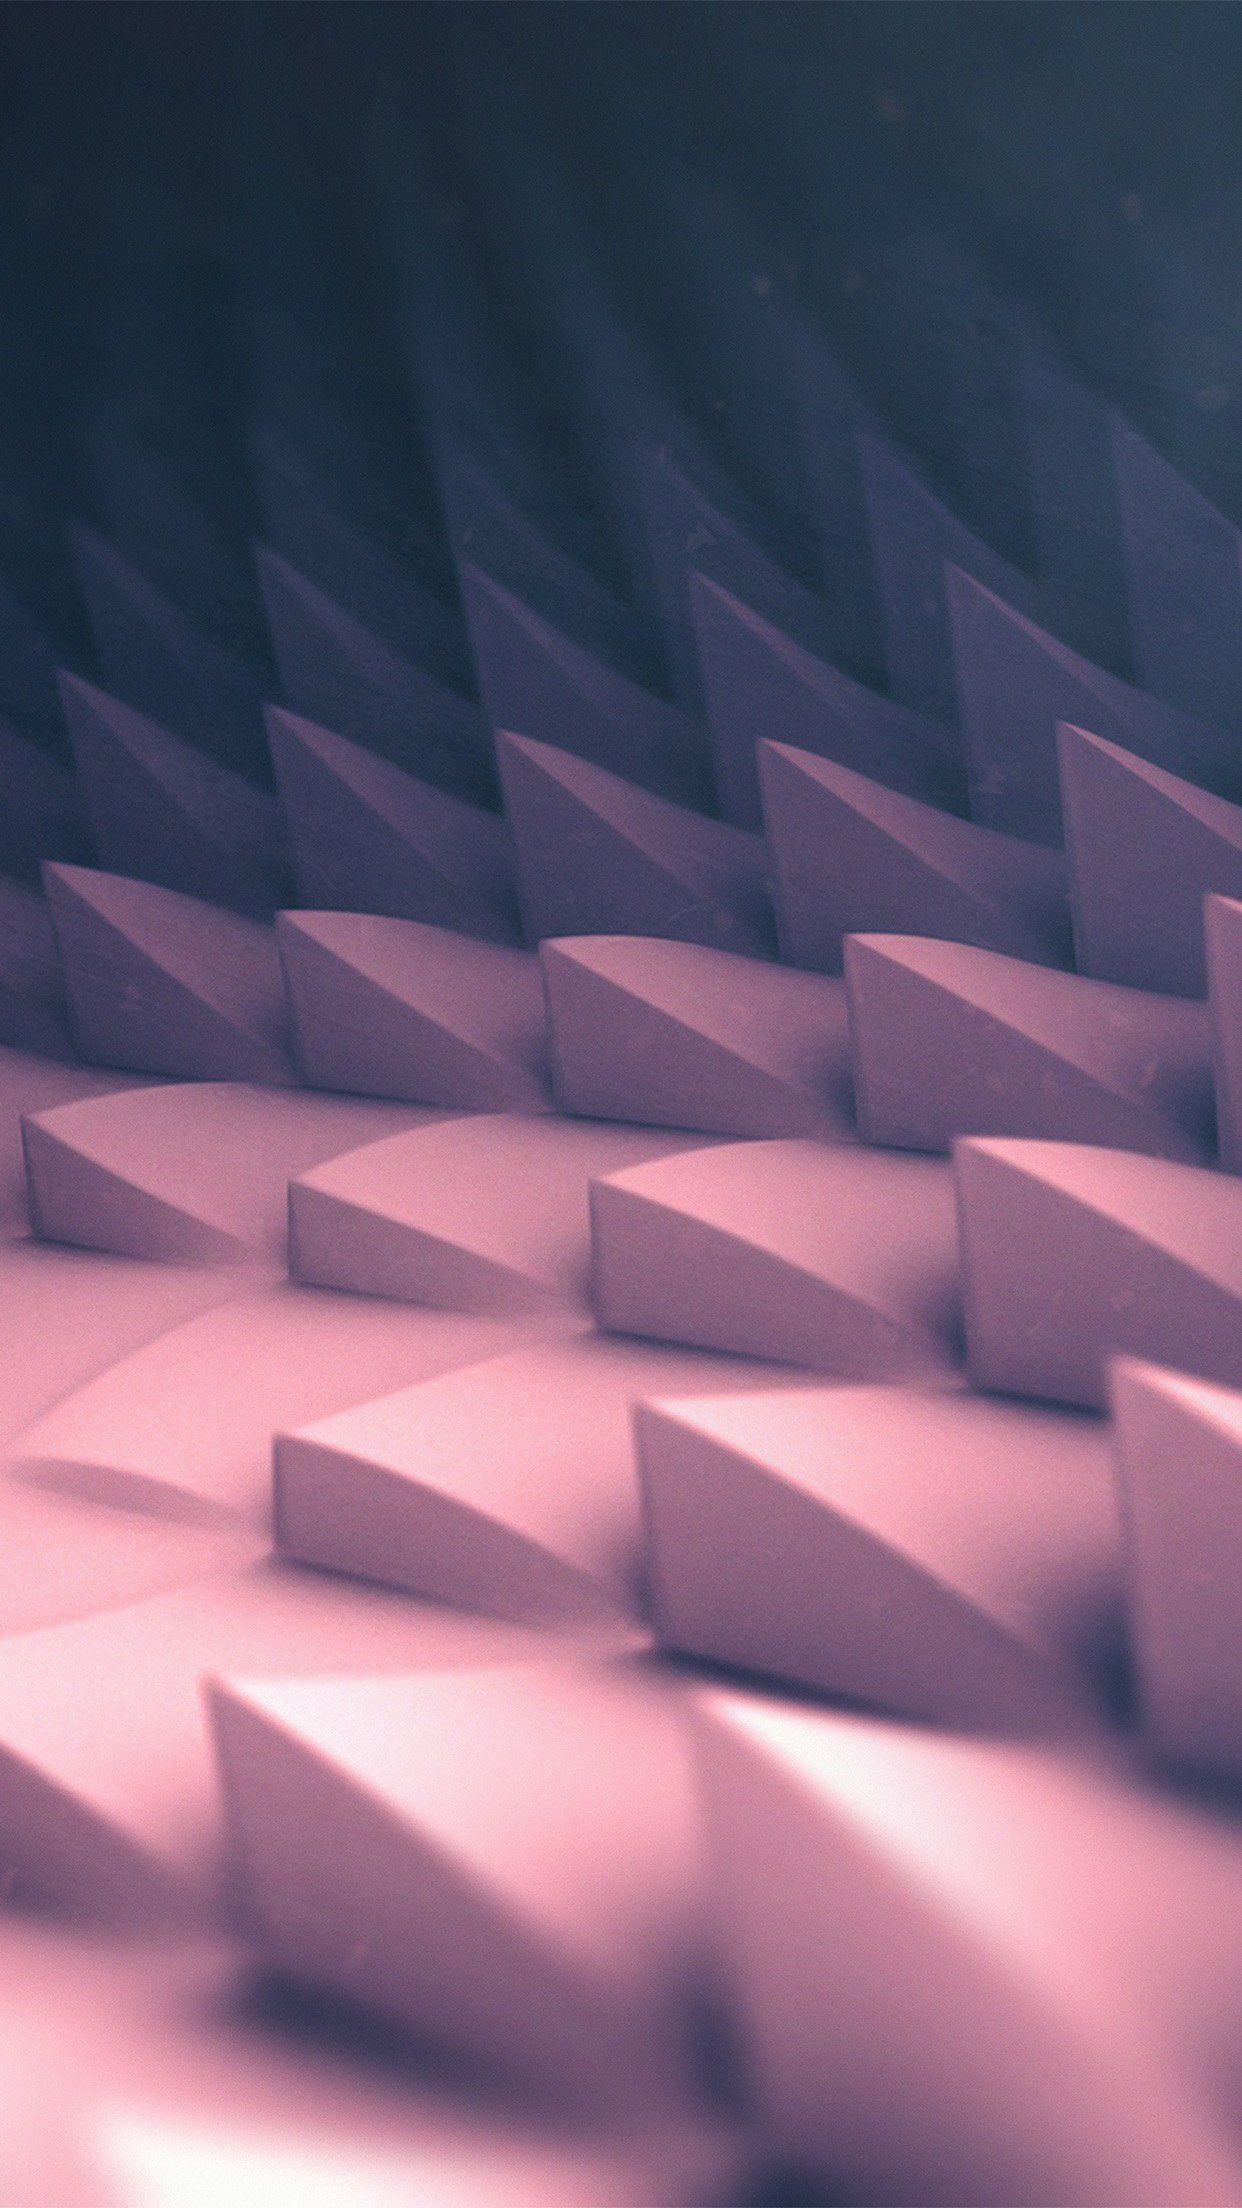 Ultra High Definition Cool Wallpaper For Mobile Geometric Wallpaper Iphone Android Wallpaper Geometric Wallpaper